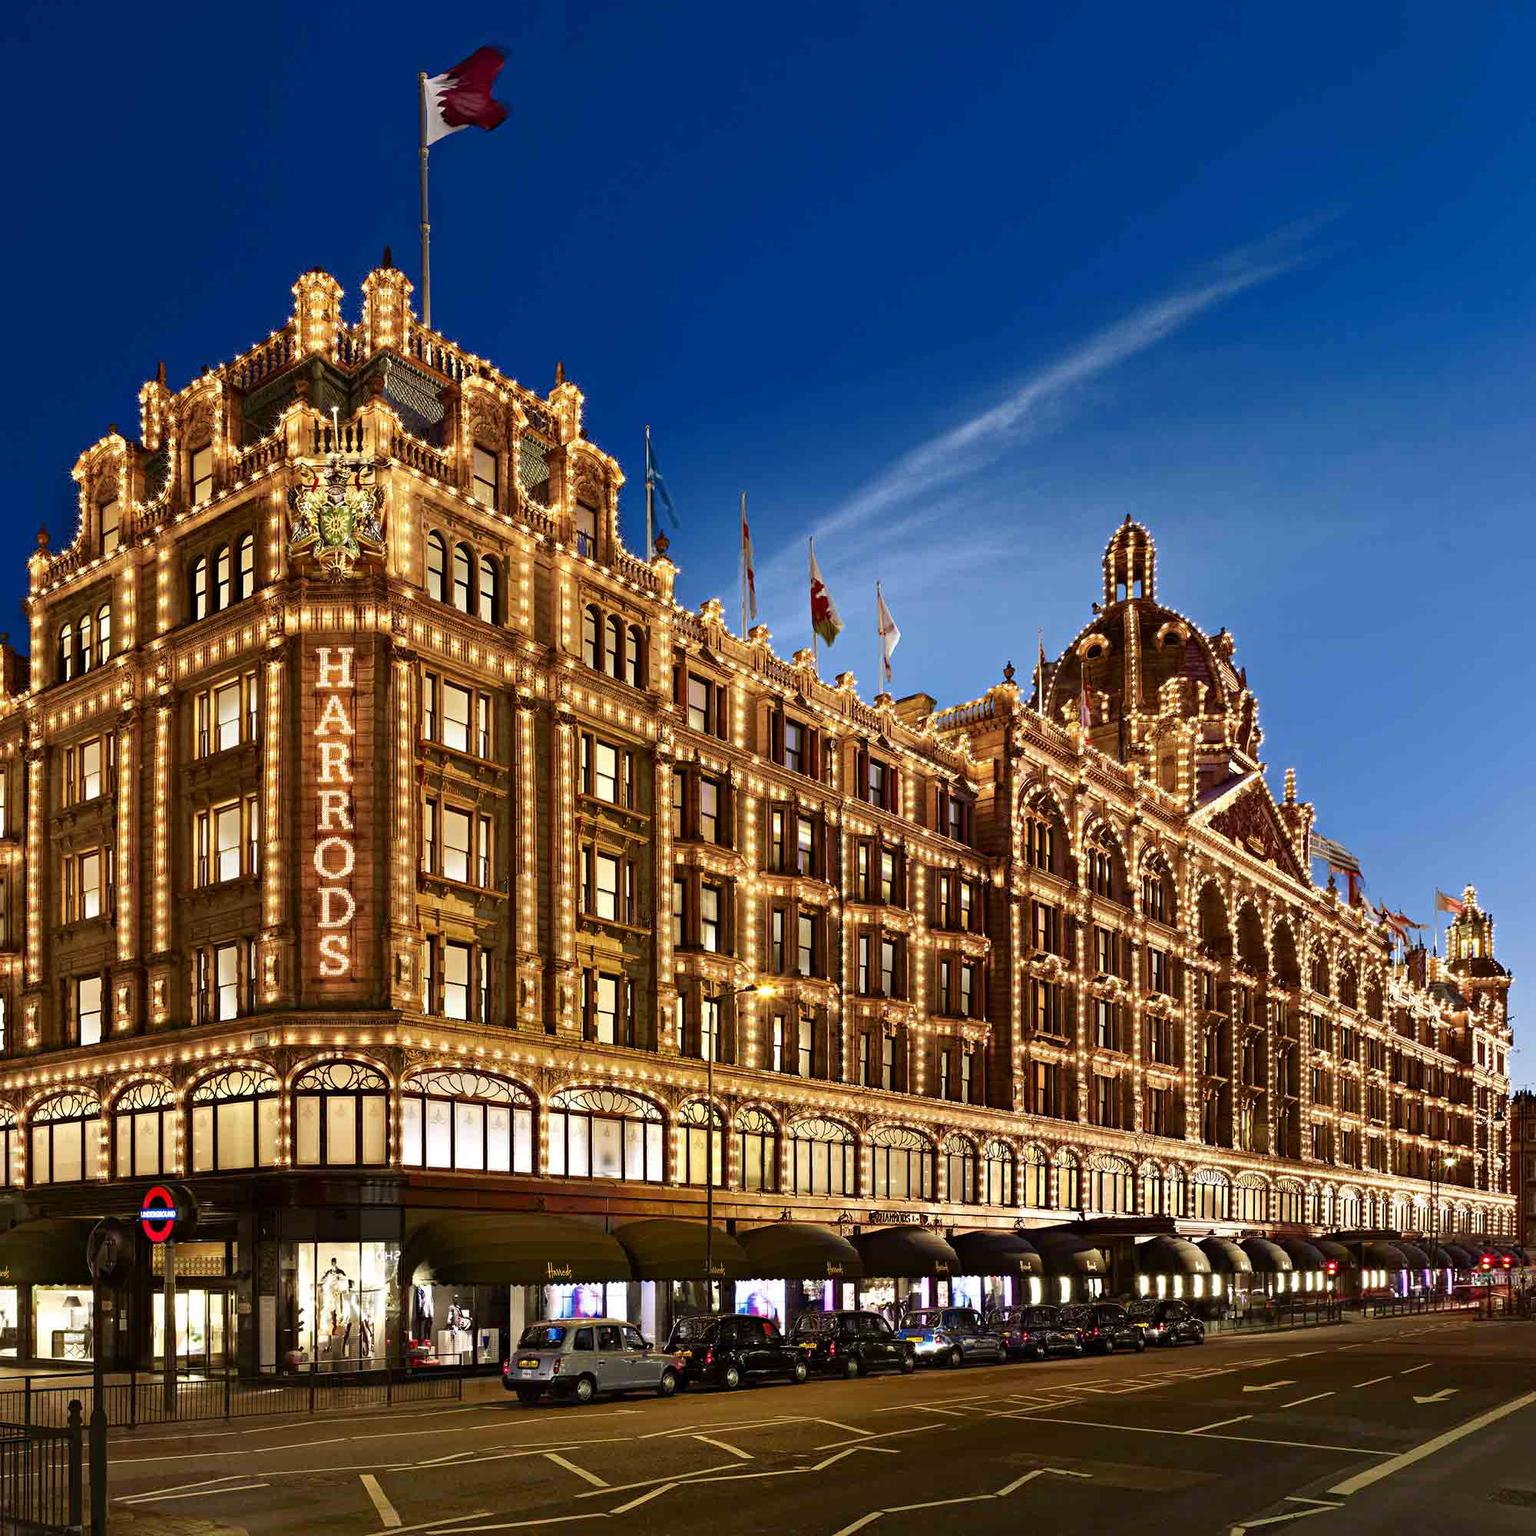 Harrods London exterior shot at night